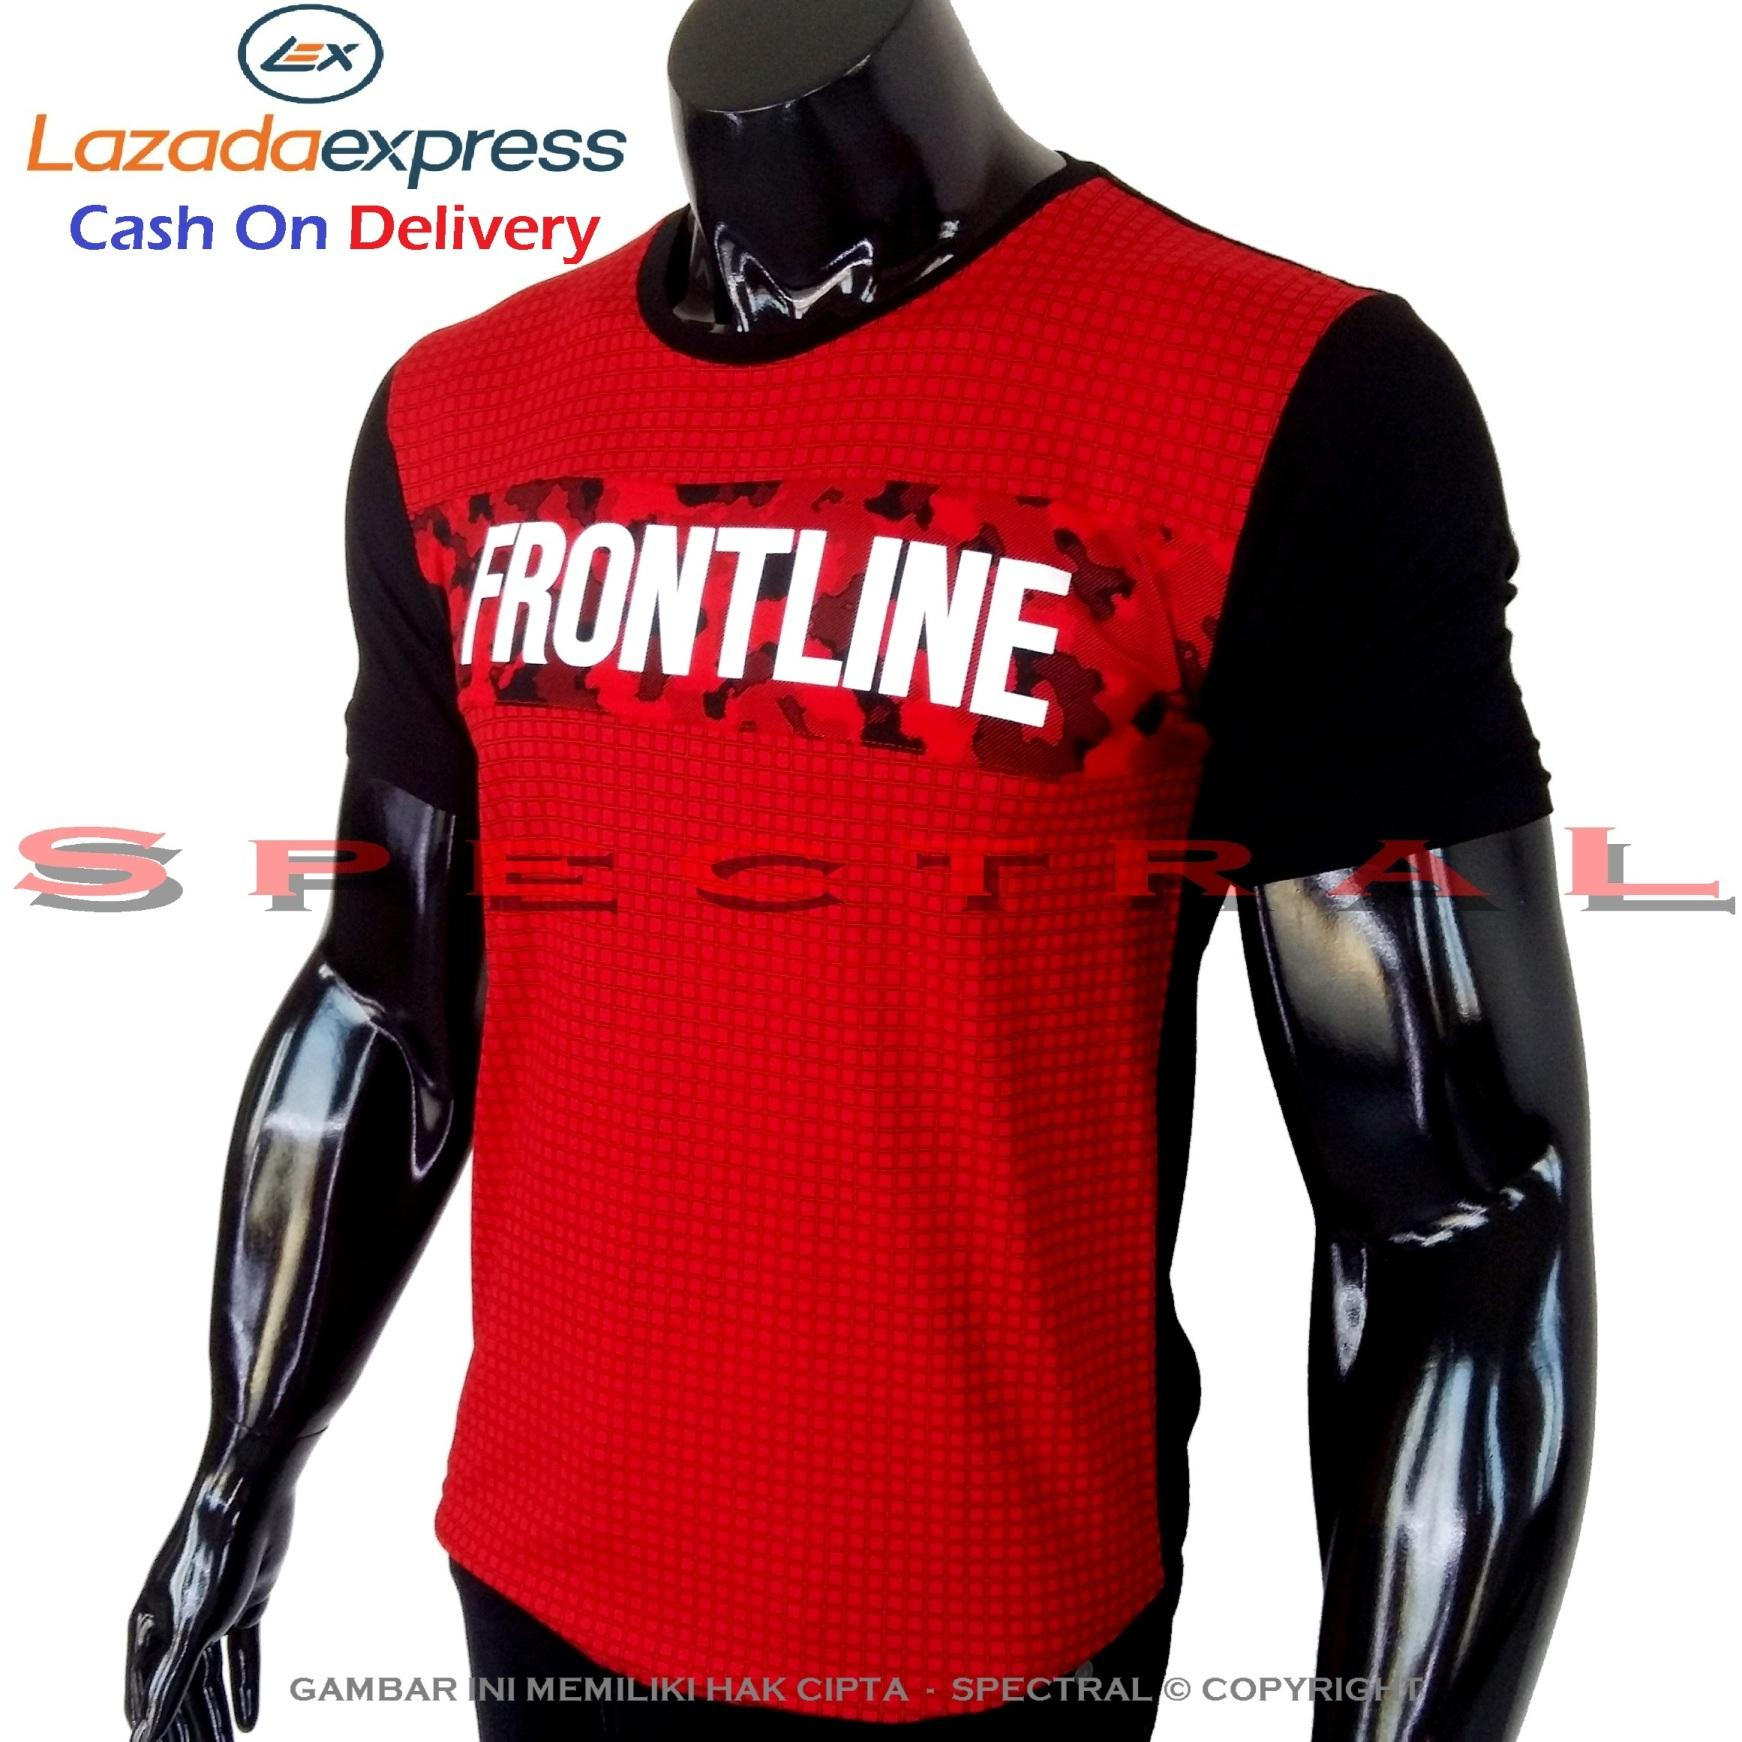 Spectral - Kaos Distro FRONTLINE Soft Rayon Viscose Lycra Pola M Fit To L Simple Fashionable Tidak